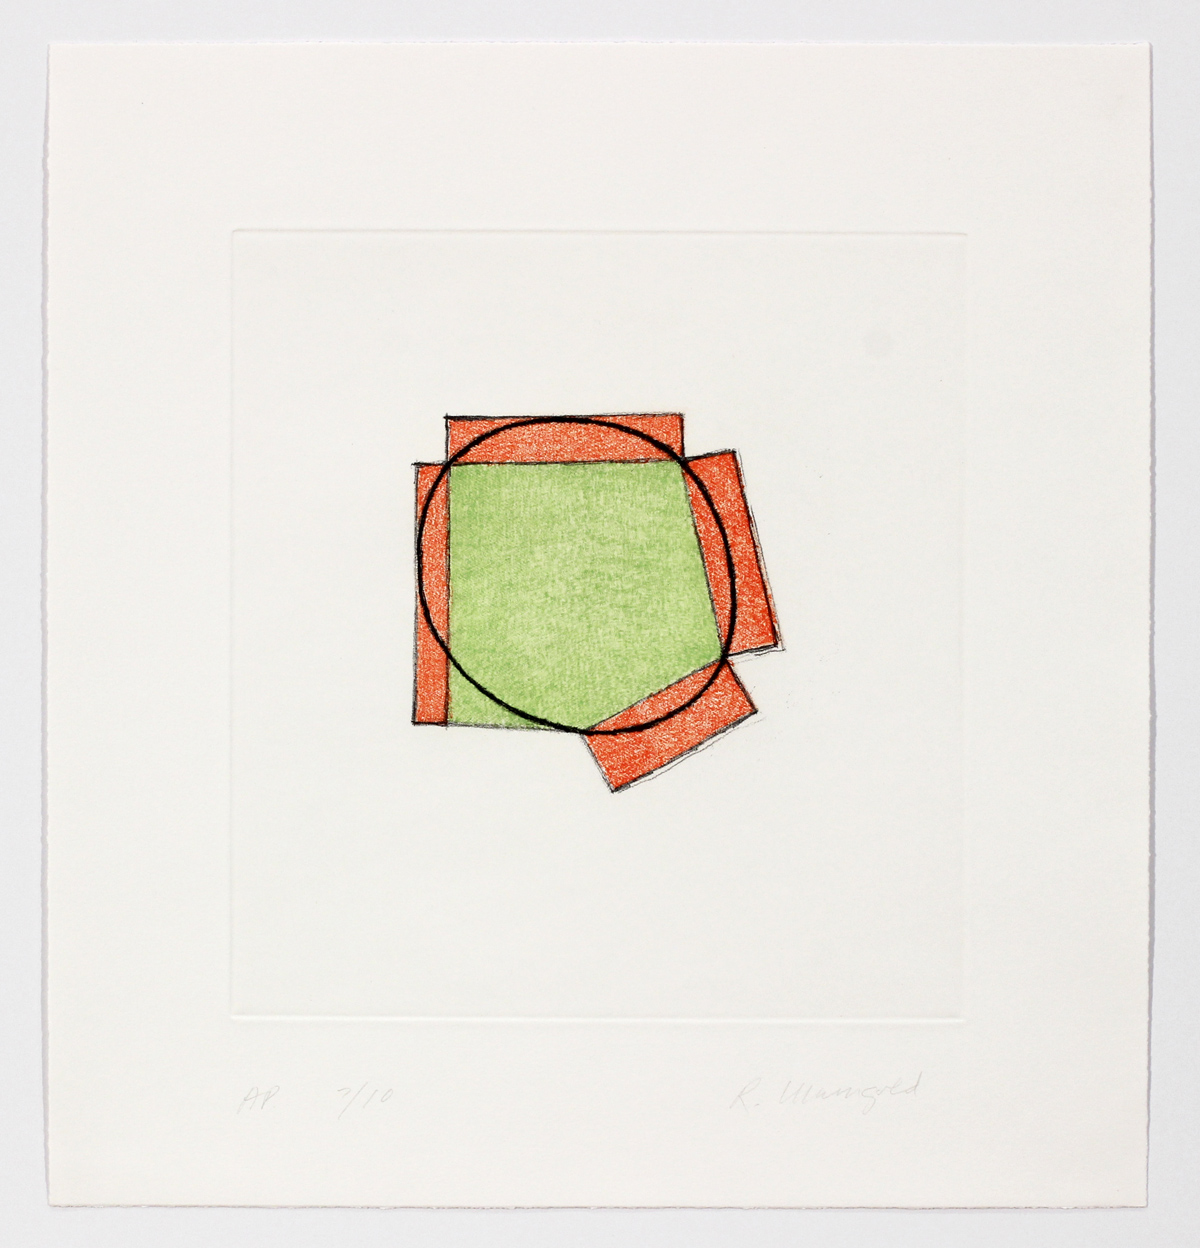 Untitled (Green Ellipse / Orange Broken Frame) | Robert Mangold